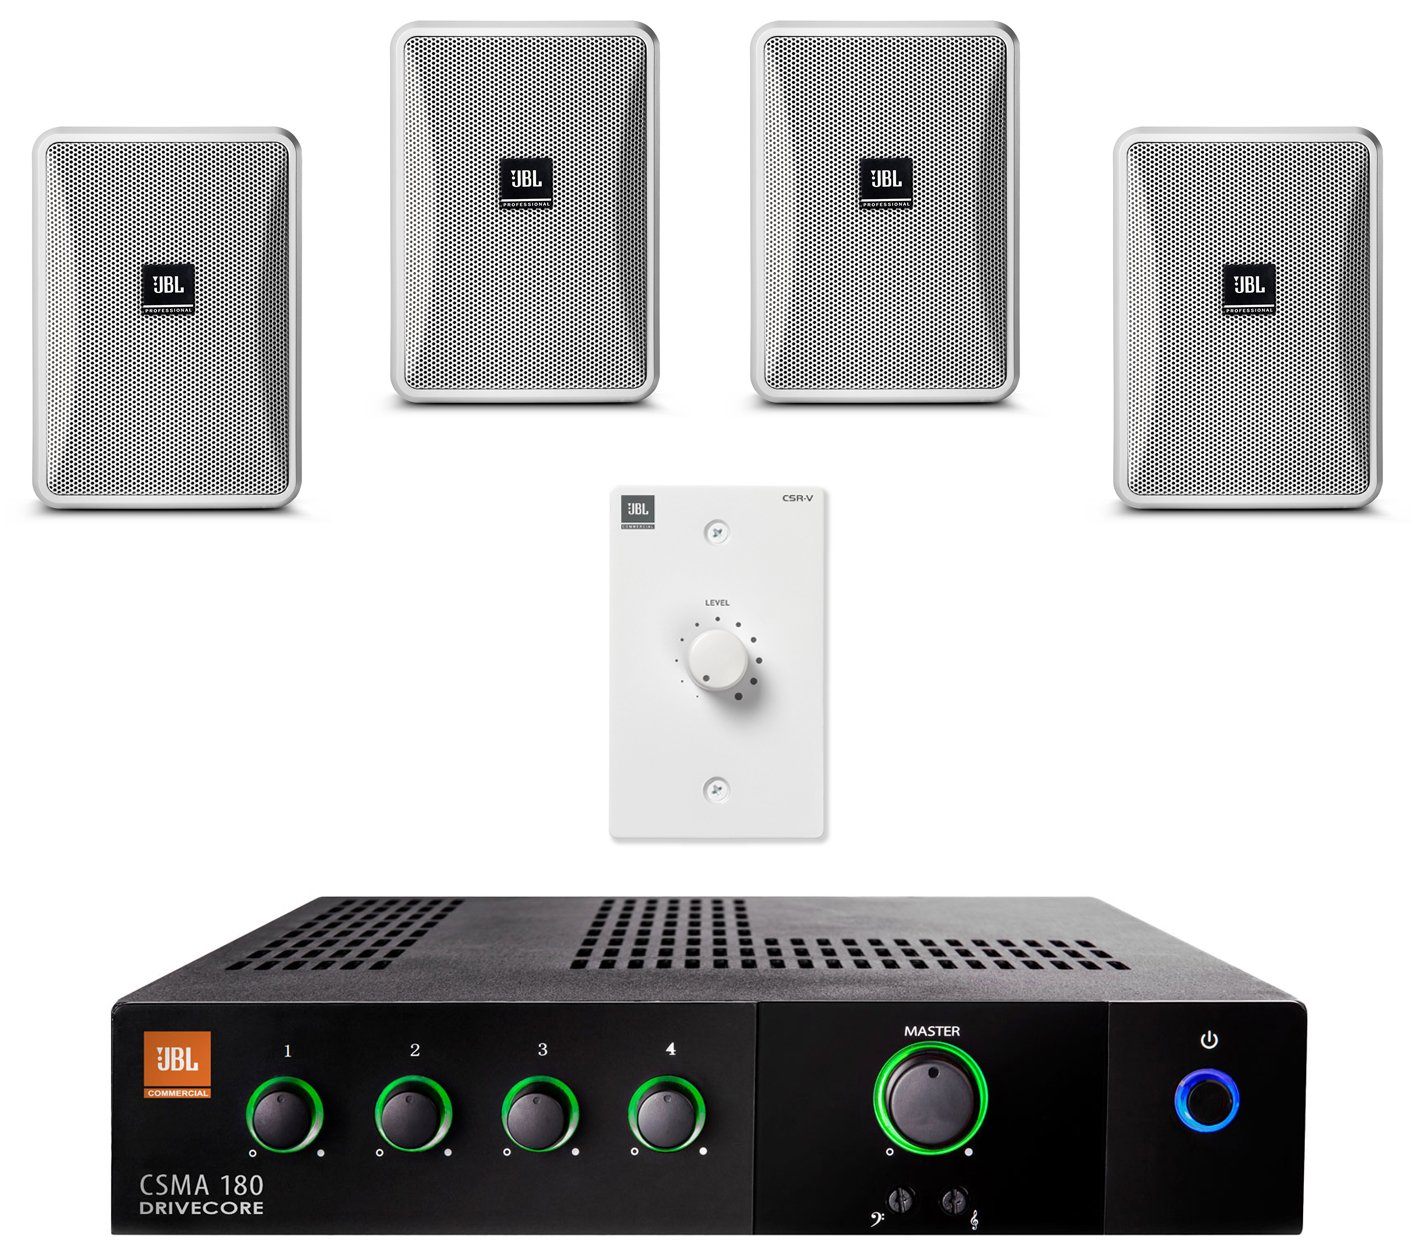 JBL Control 23-1-WH Wall Mount Loudspeaker Bundle with JBL CSMA180 Mixer Amplifier and Accessories - Restaurant Sound System, White (7 Items)